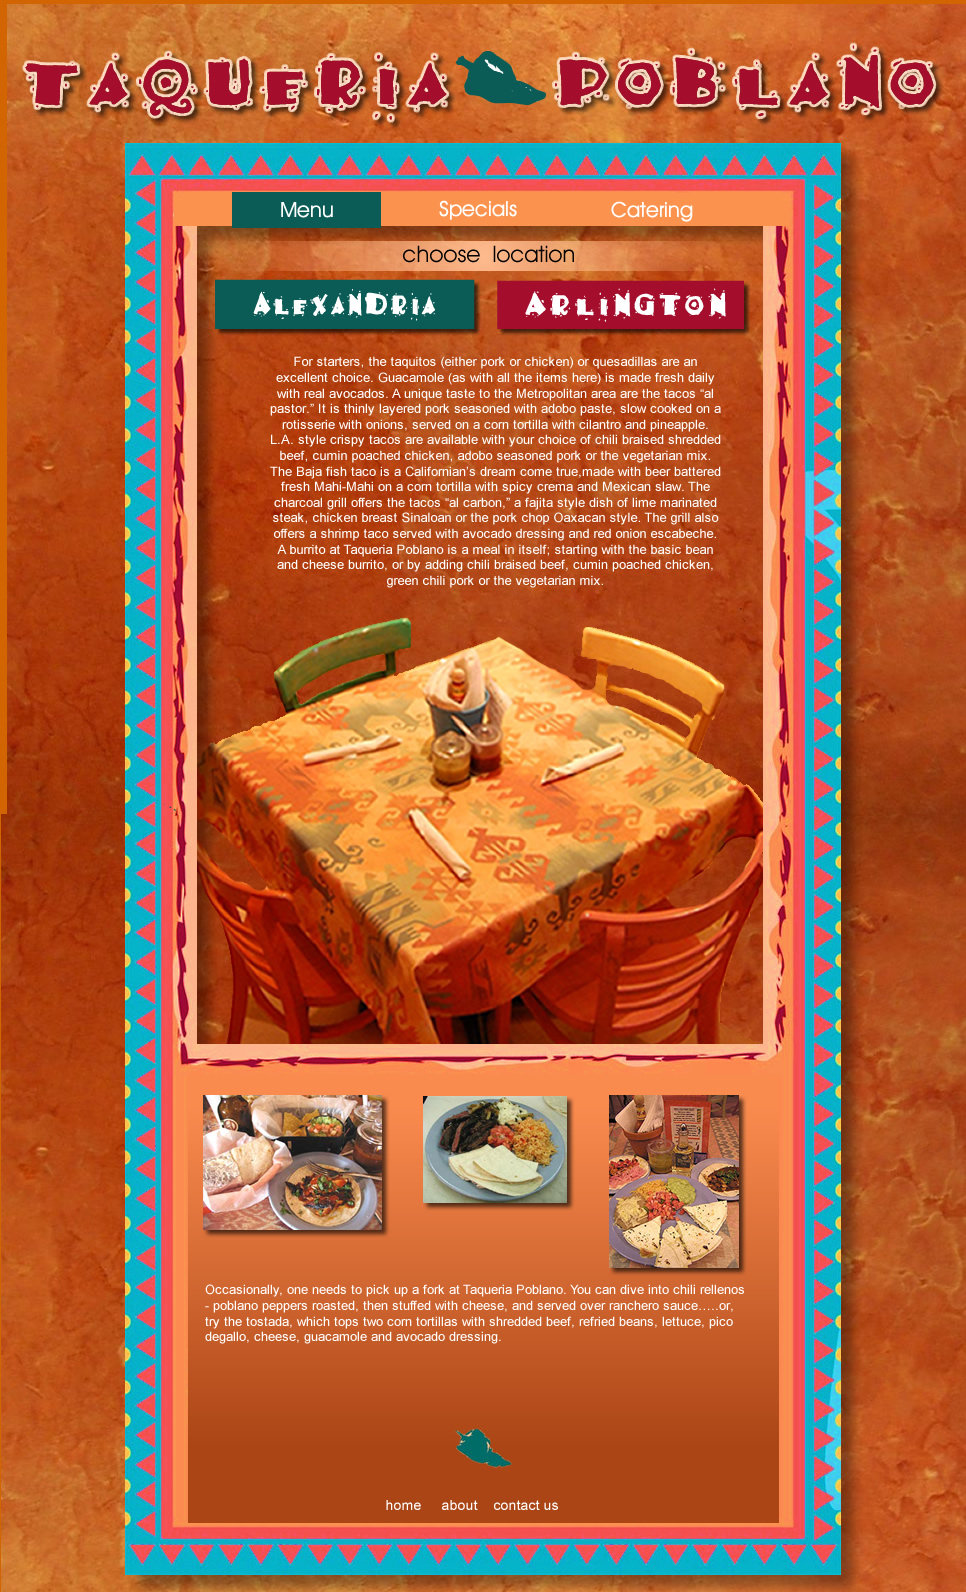 Web Page Design by Rudy - Entry No. 25 in the Web Page Design Contest New Web Page Design for Southwestern restaurant.